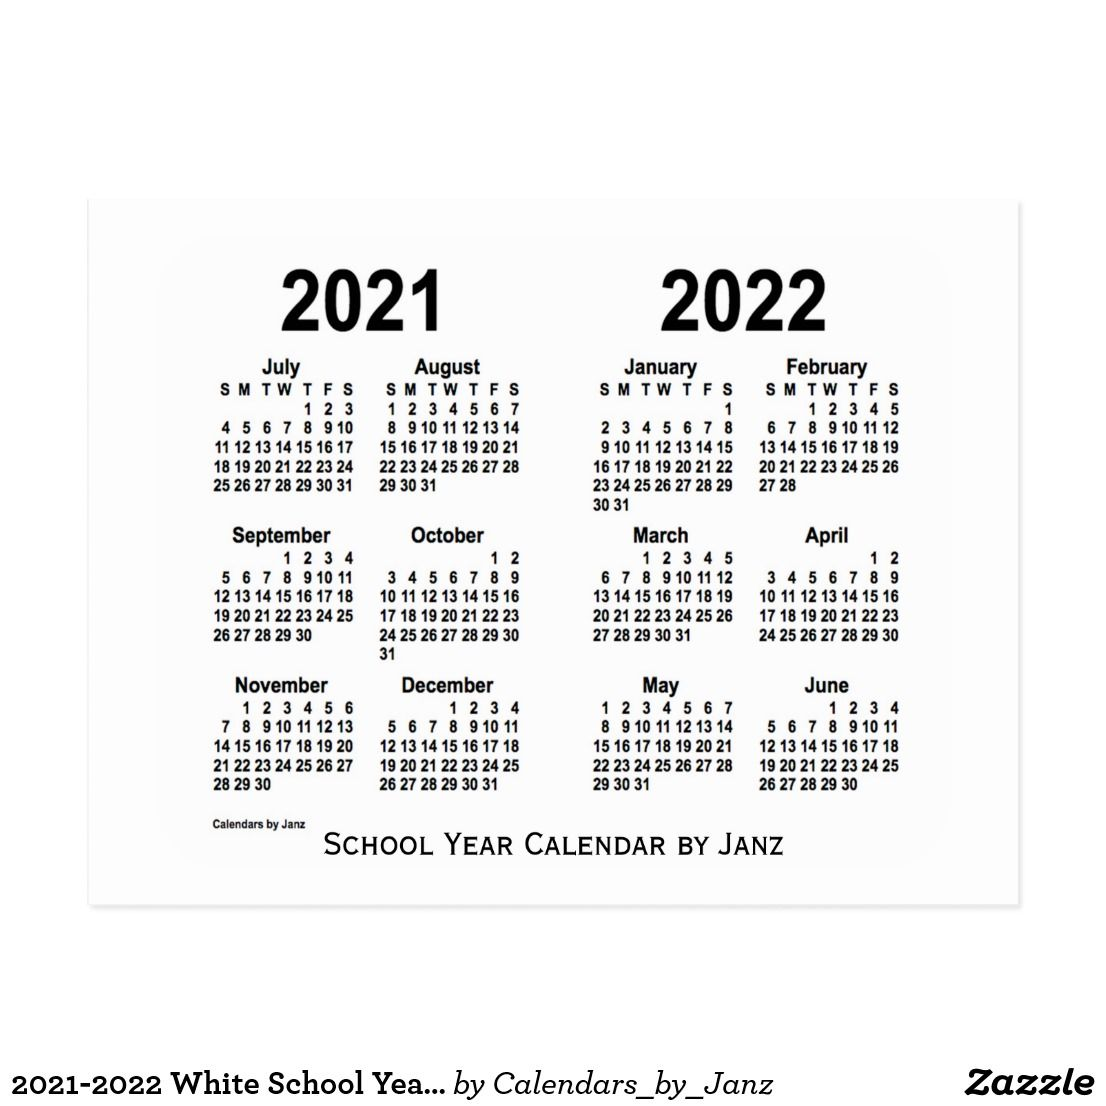 2021 2022 White School Year Calendar by Janz Postcard | Zazzle.